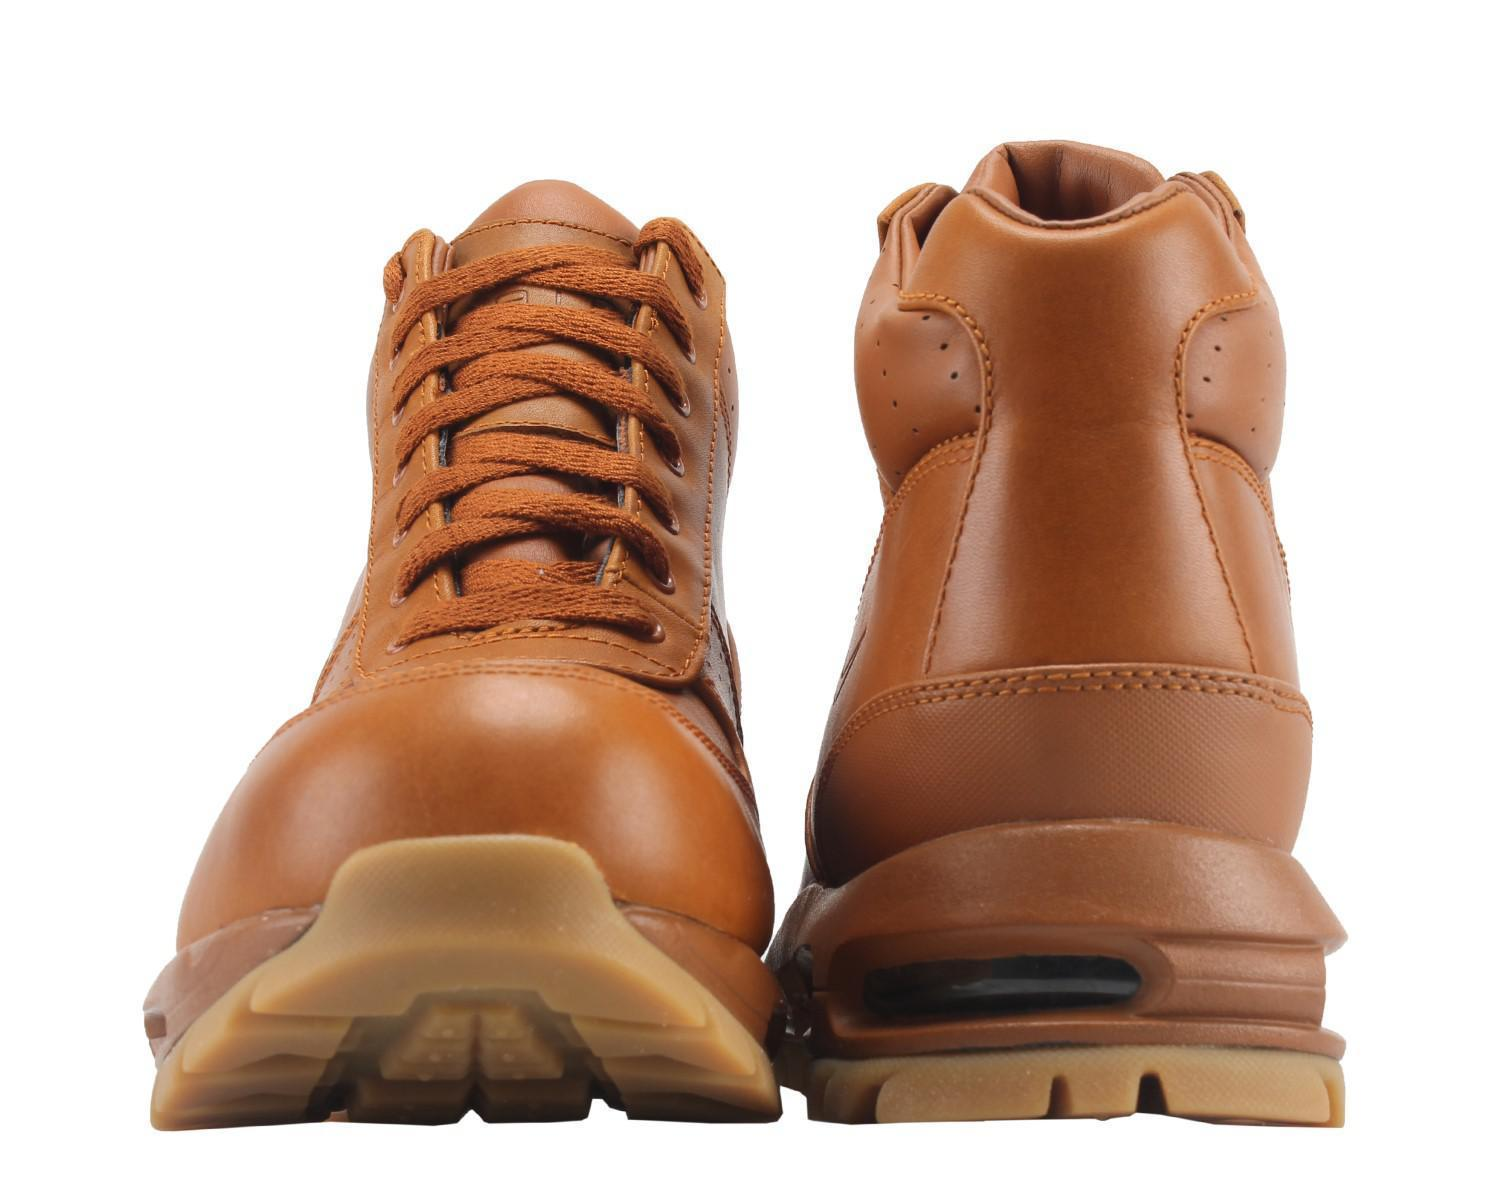 huge selection of f55ce f5c46 Nike Air Max Goadome Boots Tawny Gum Light Brown ACG 865031 208 Mens Size  7.5